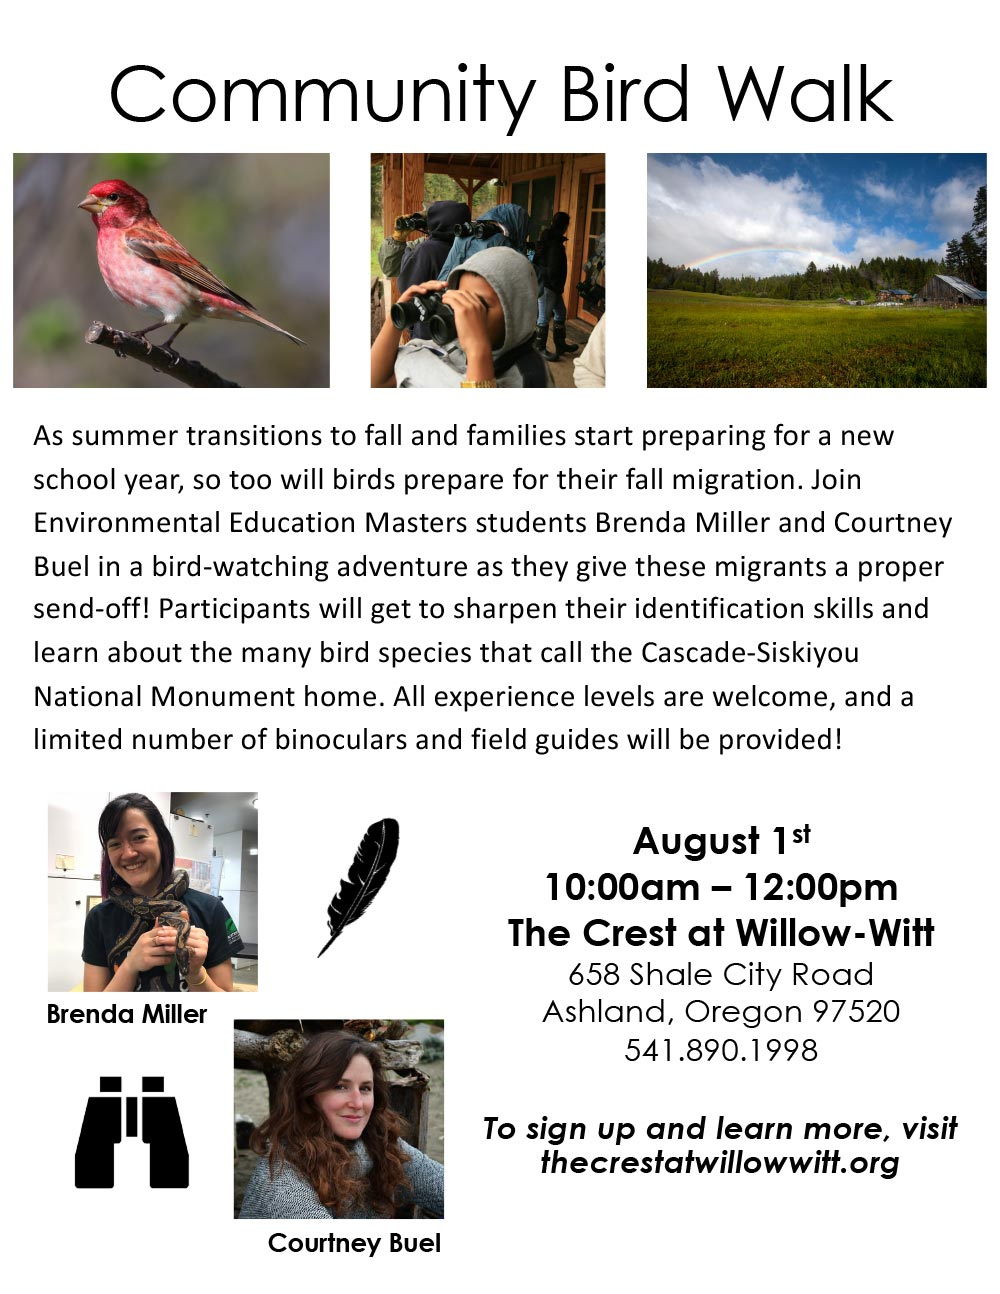 August 1, 2020 Community Bird Walk led by Environmental Education Masters students